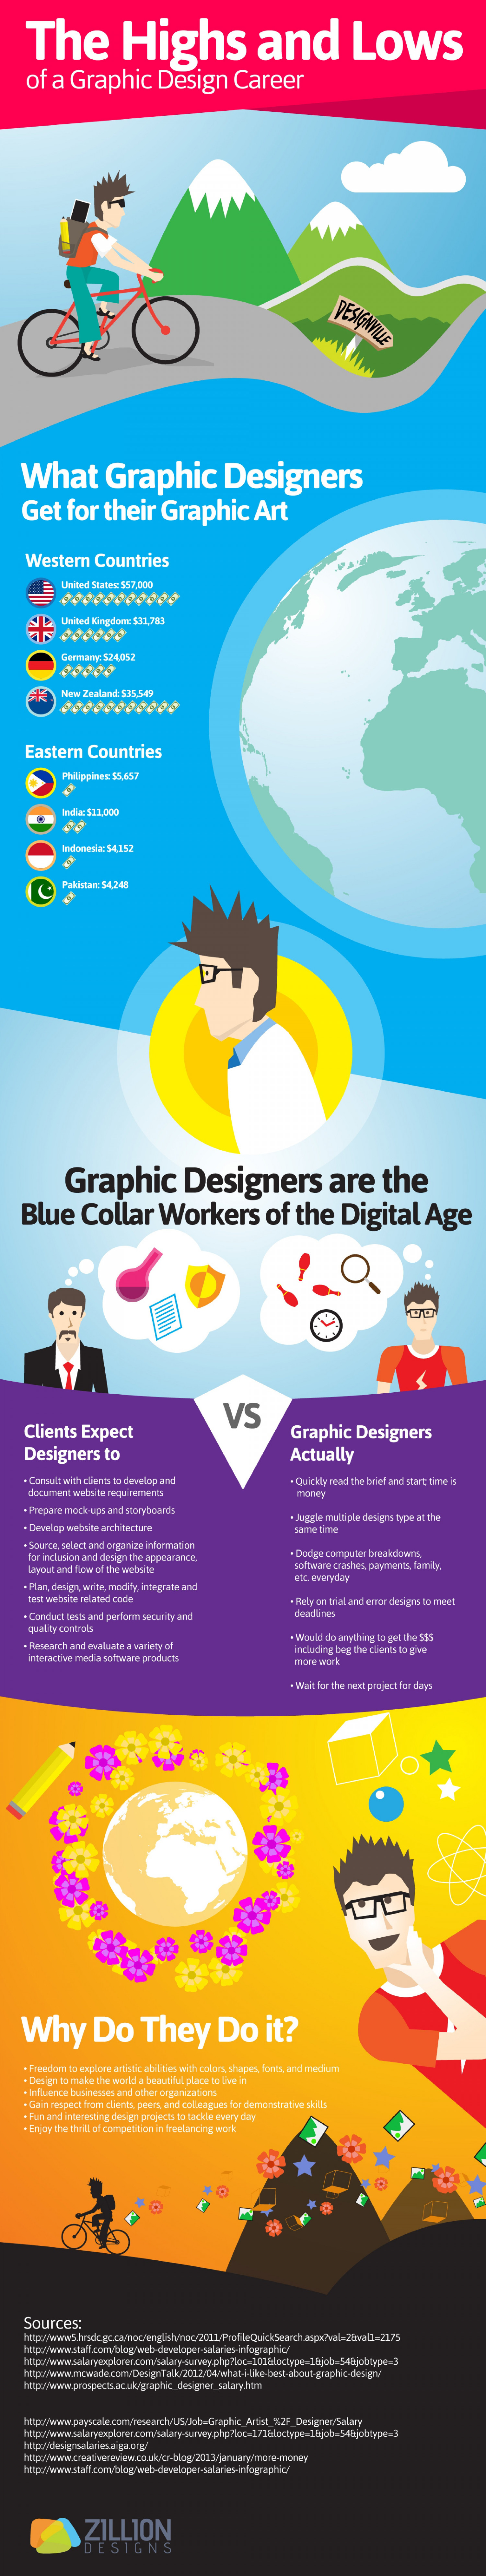 The Highs and Lows of a Graphic Design Career Infographic